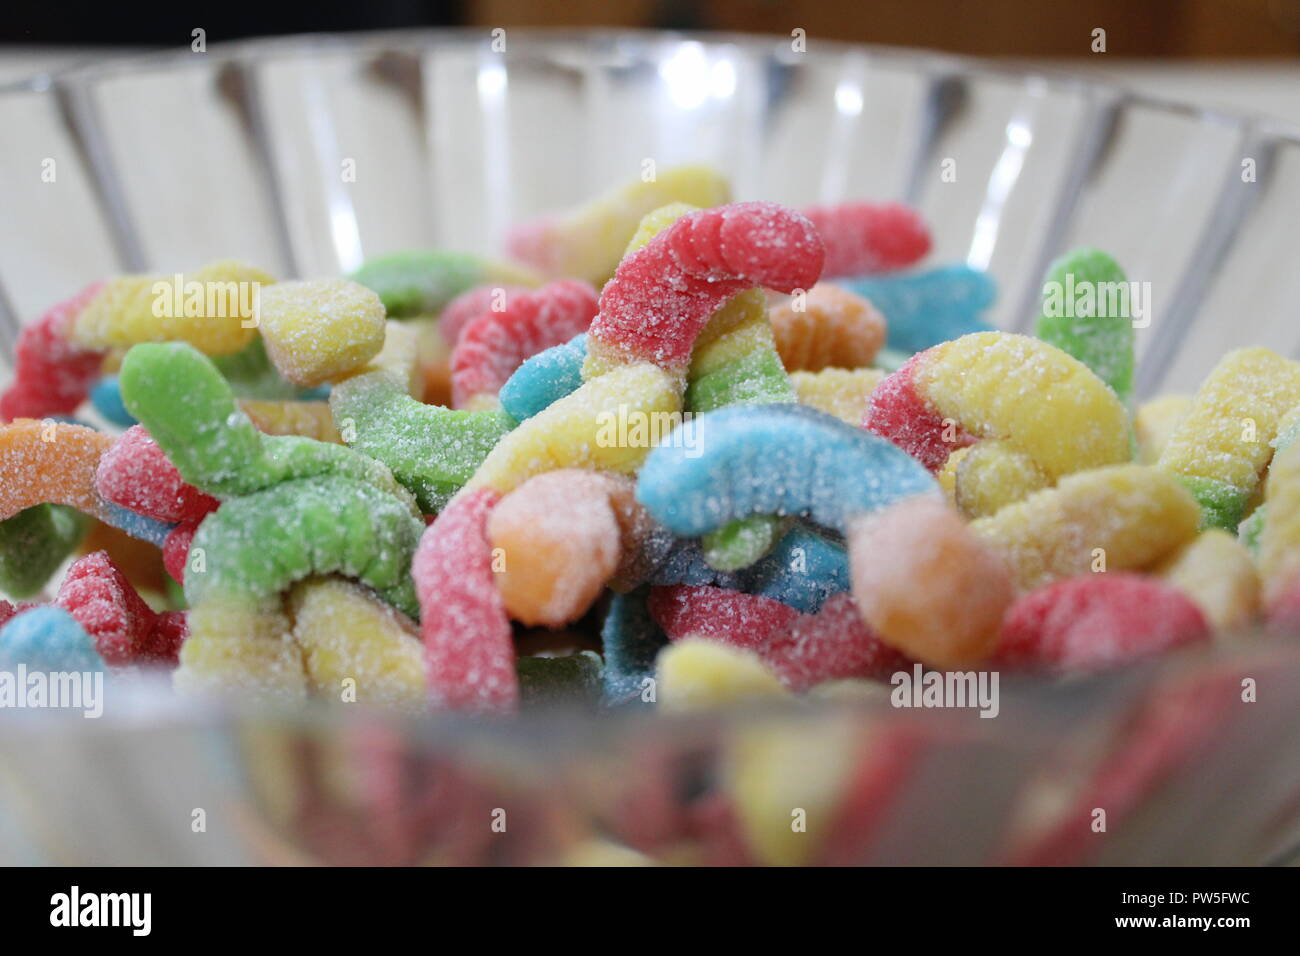 Close-up of gummy worms in plastic serving bowl - Stock Image